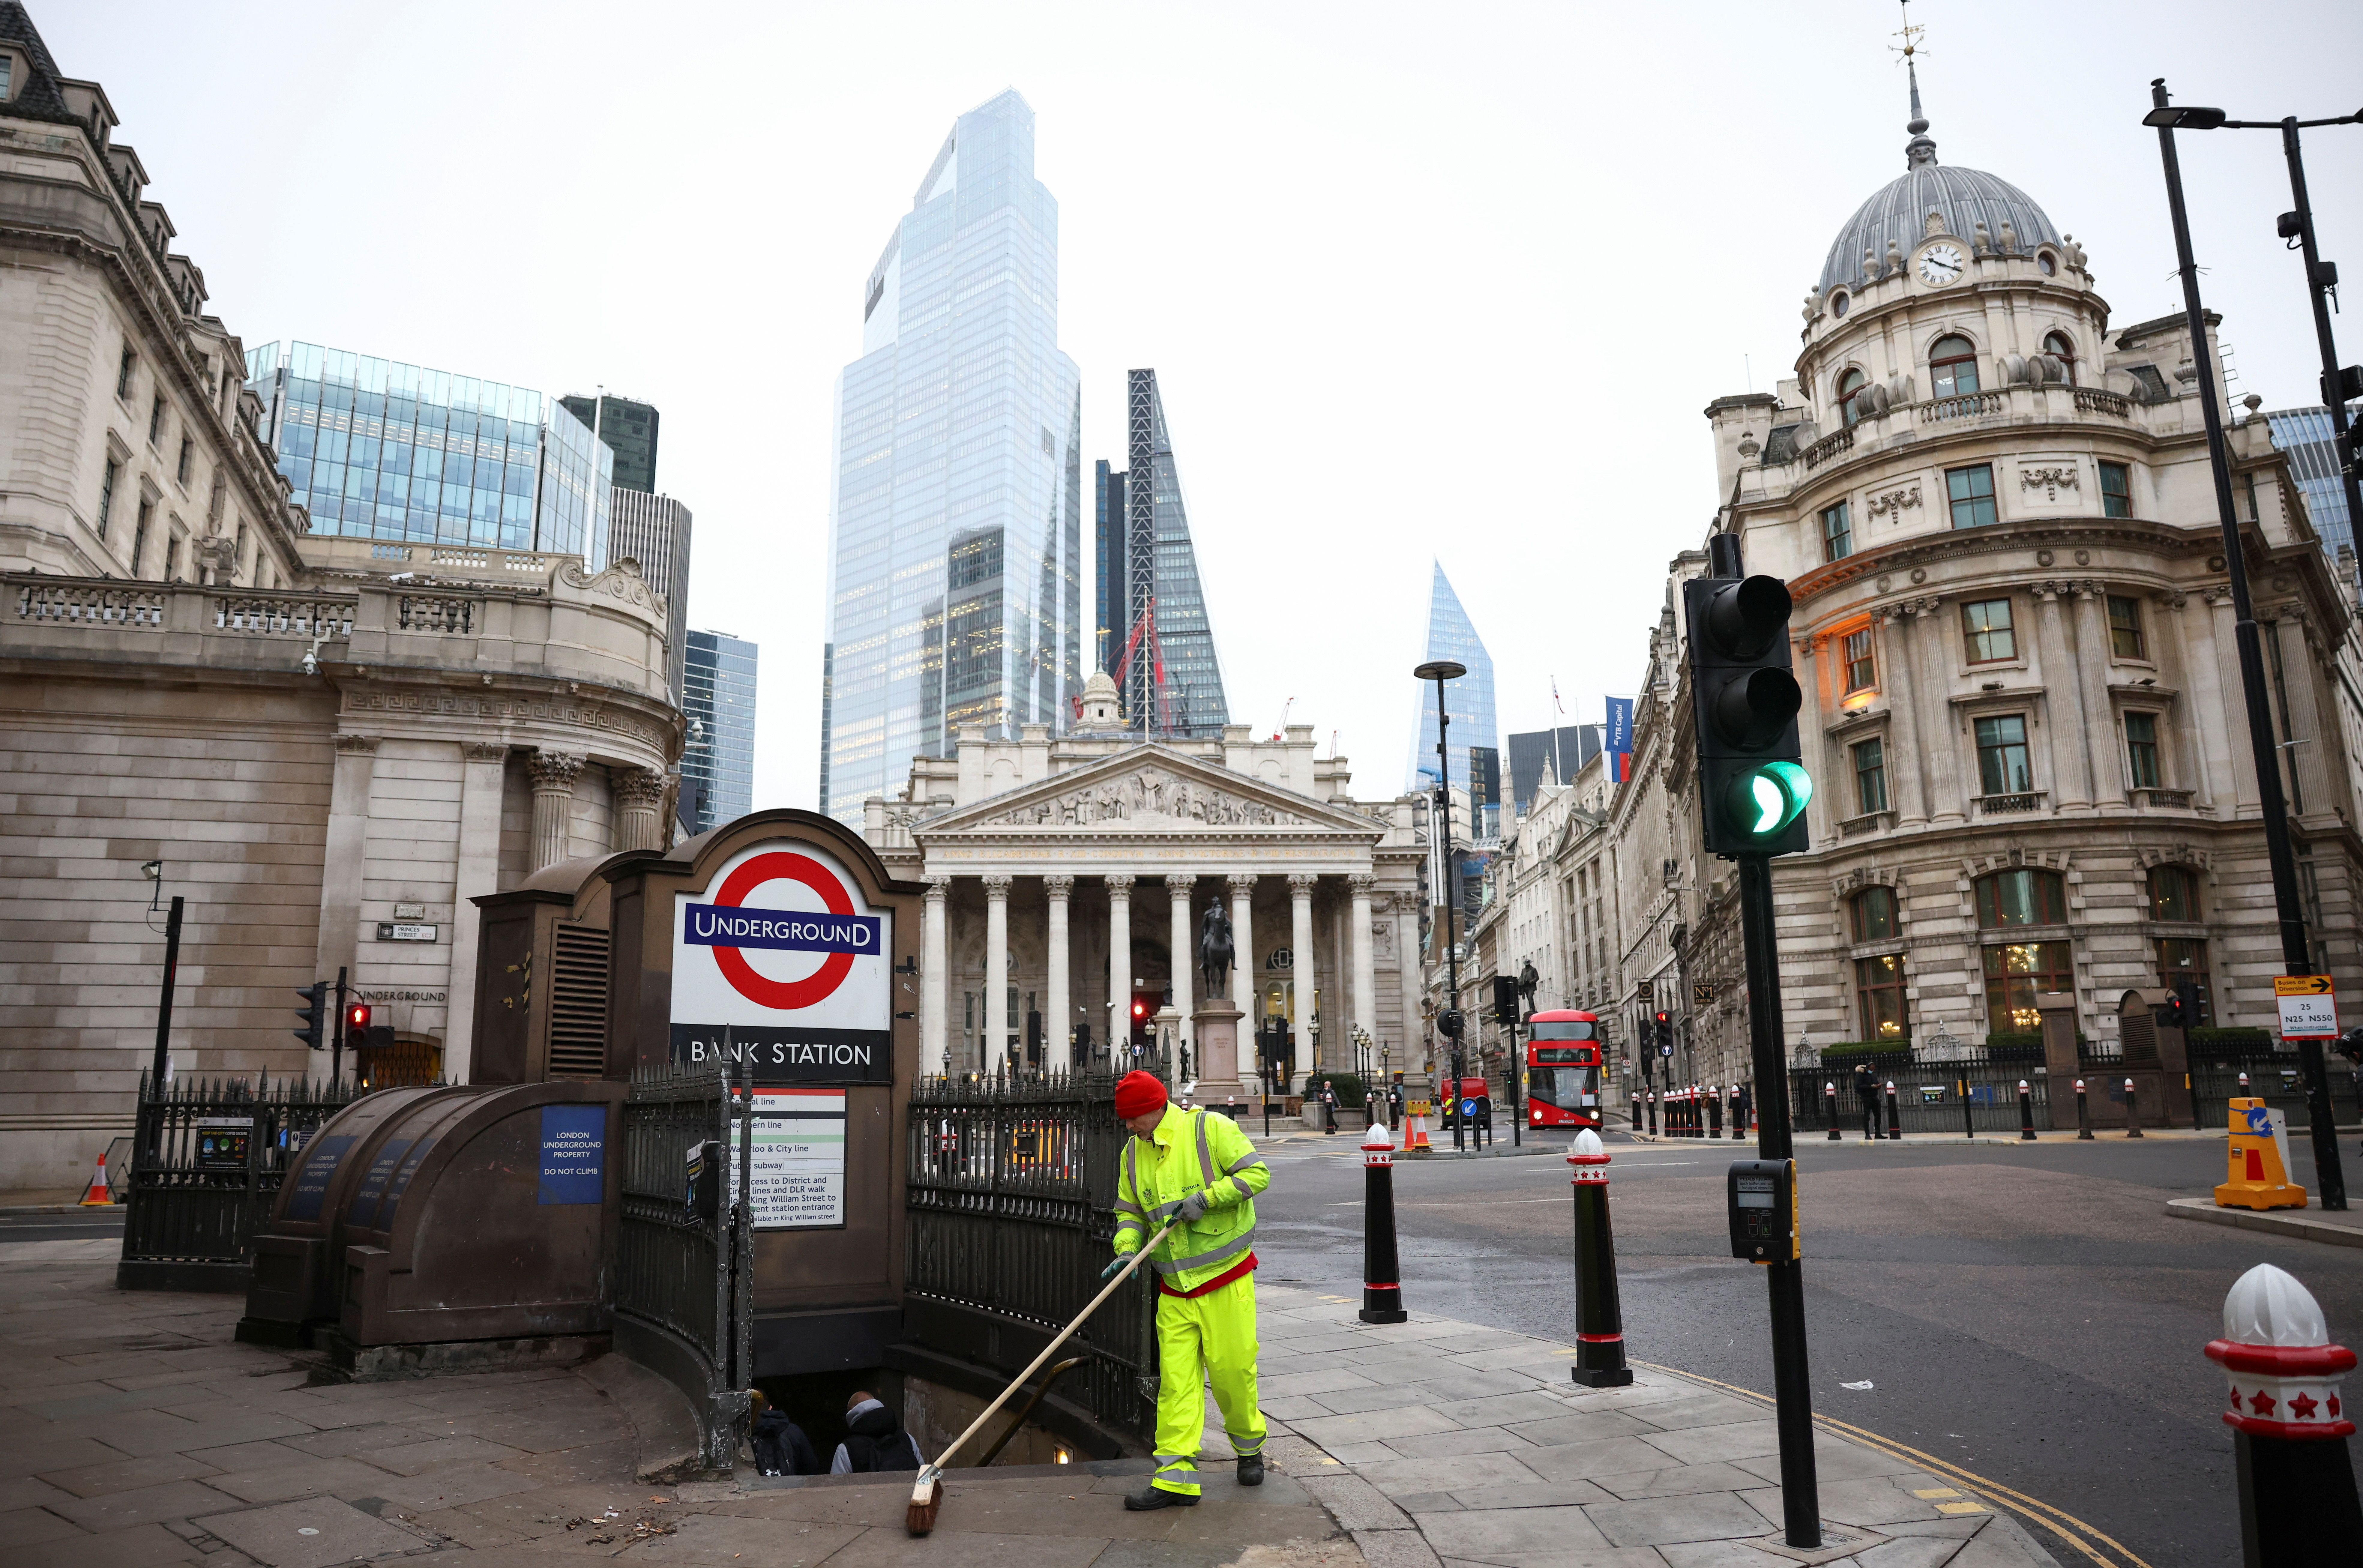 A worker sweeps a pavement at an empty Bank Junction, amid the coronavirus disease outbreak, in London, Britain.